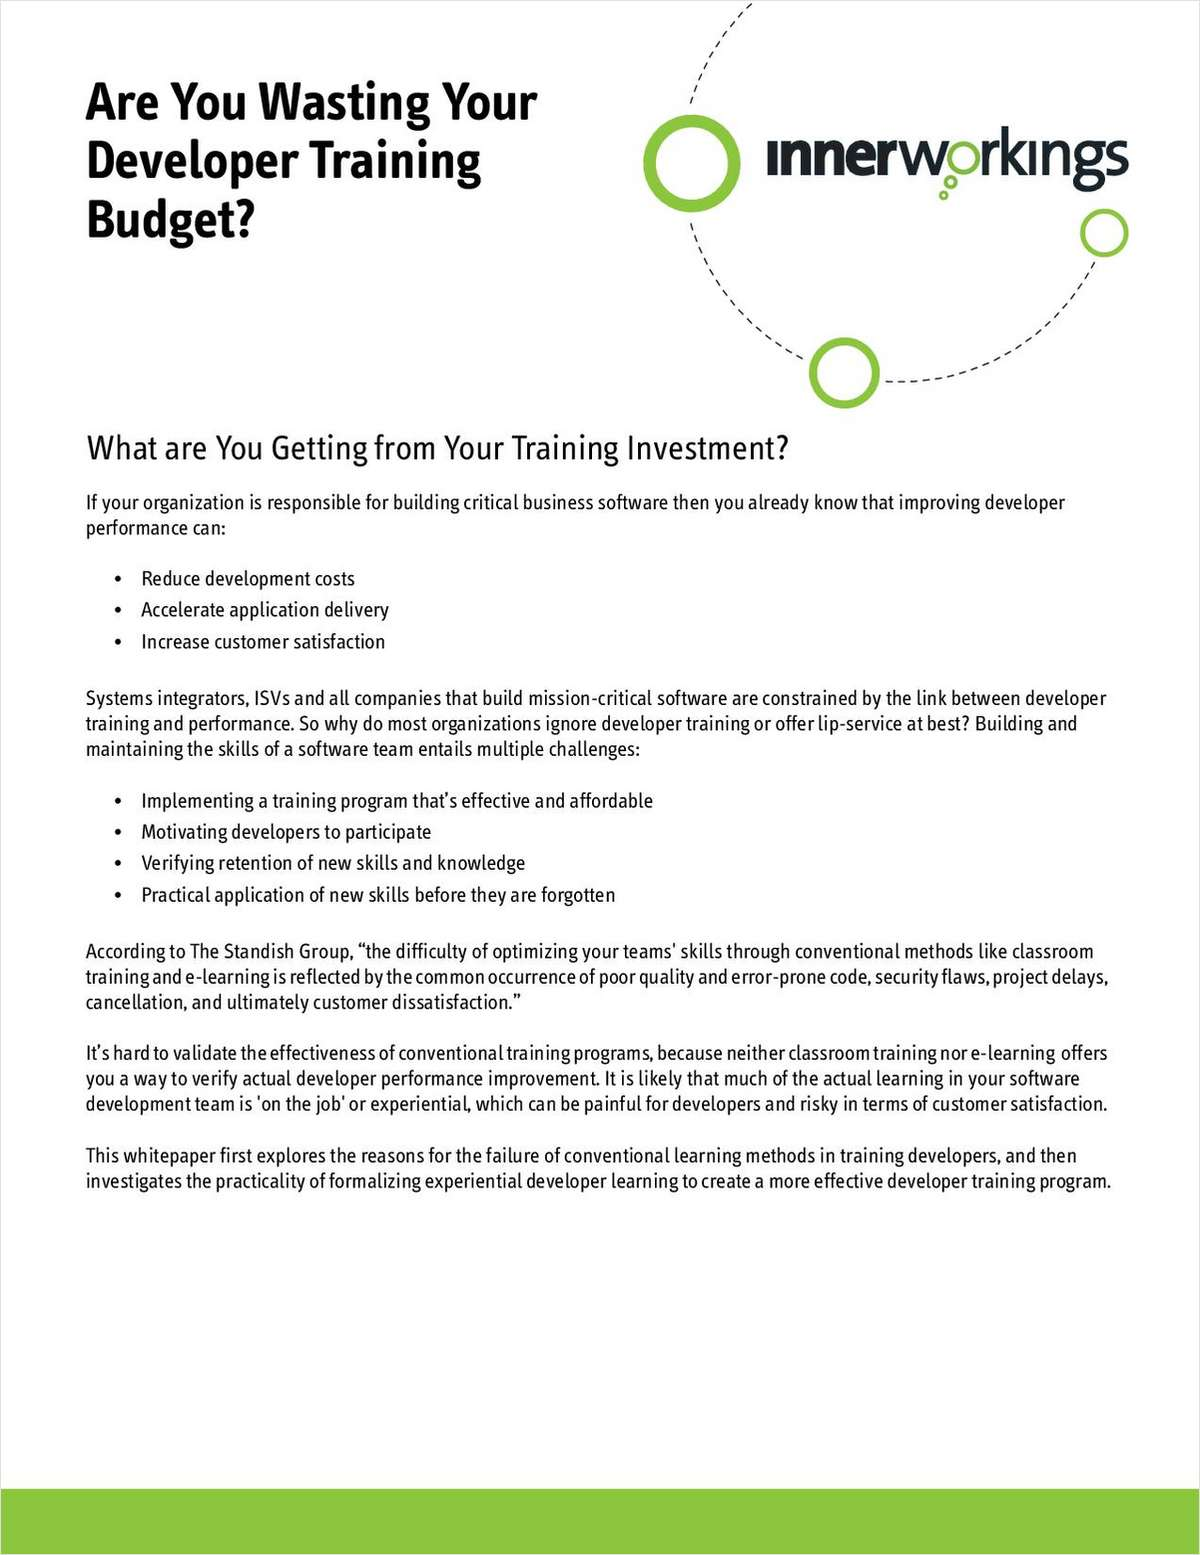 Are You Wasting Your .NET Developer Training Budget?